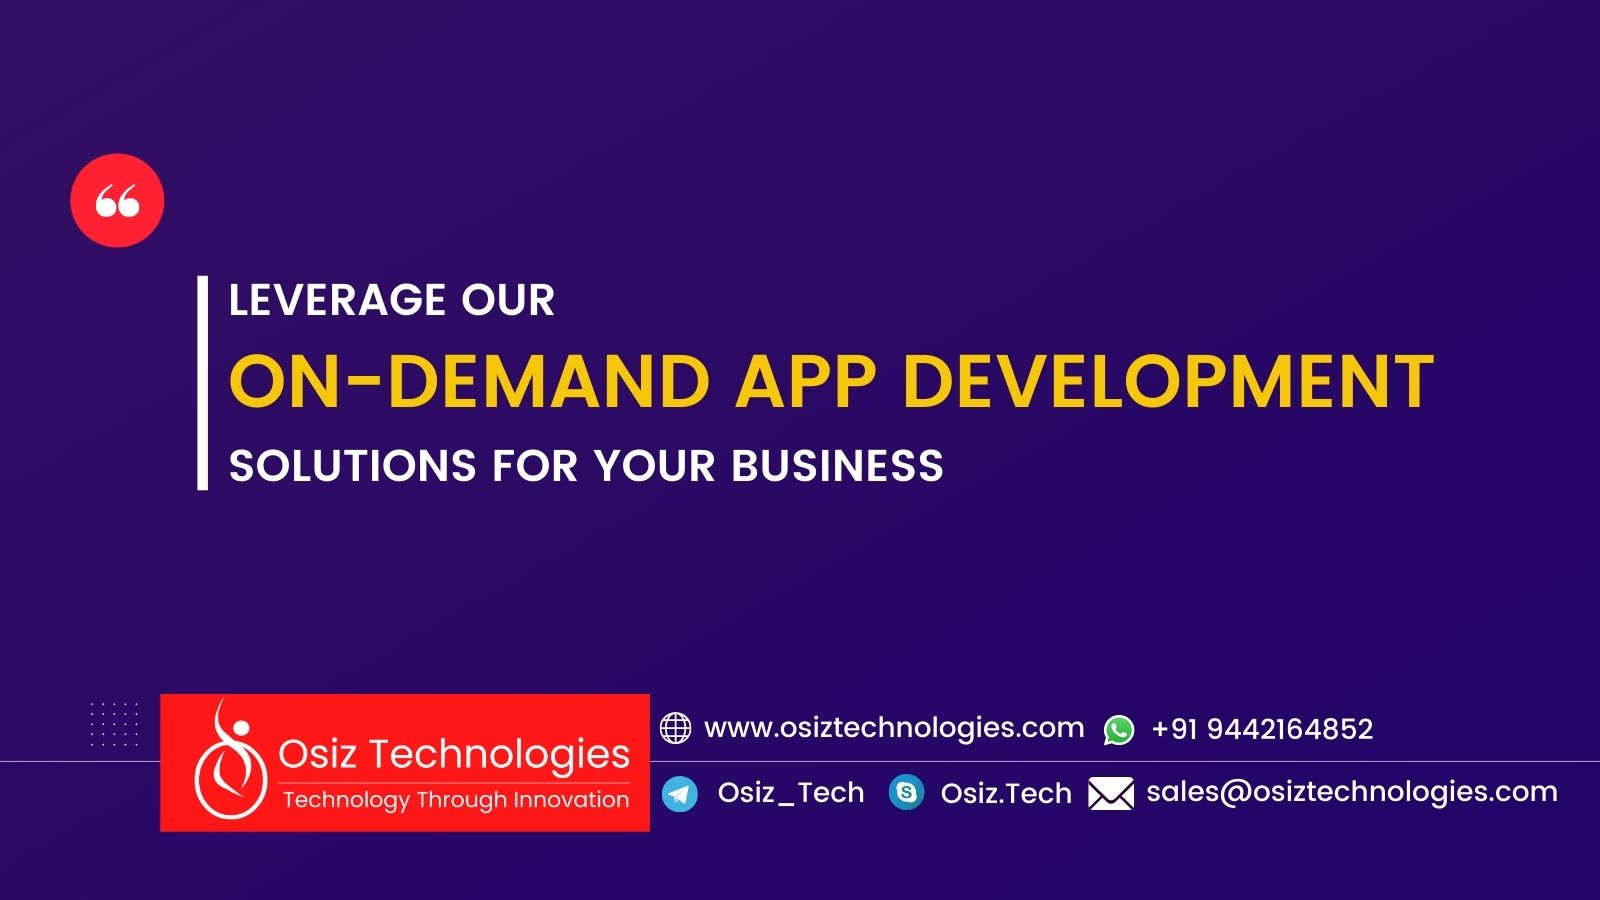 Leverage Our On-Demand App Development Solutions For Your Business